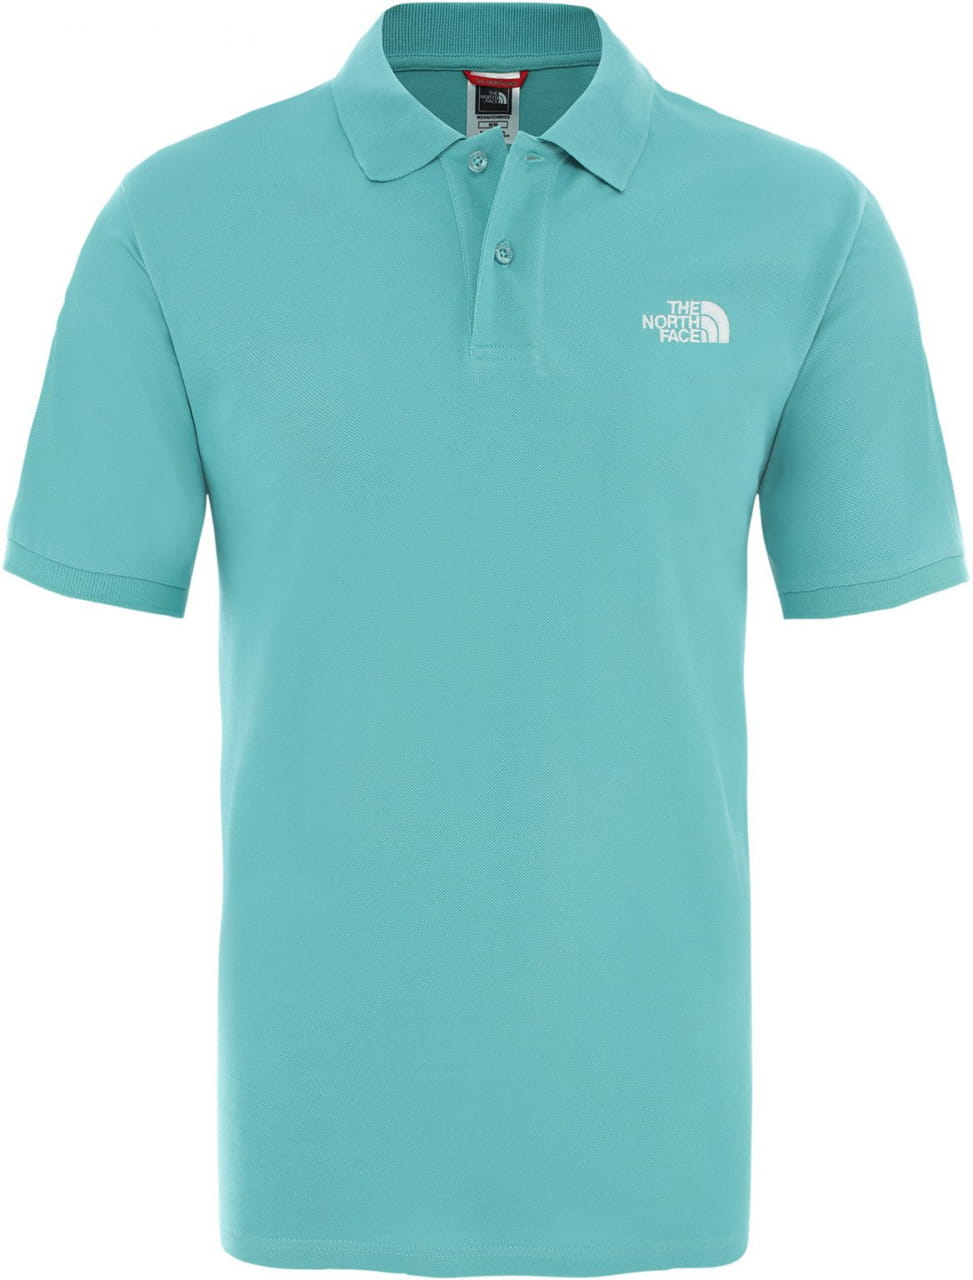 Pánské polo tričko The North Face Men's Piquet Polo Shirt